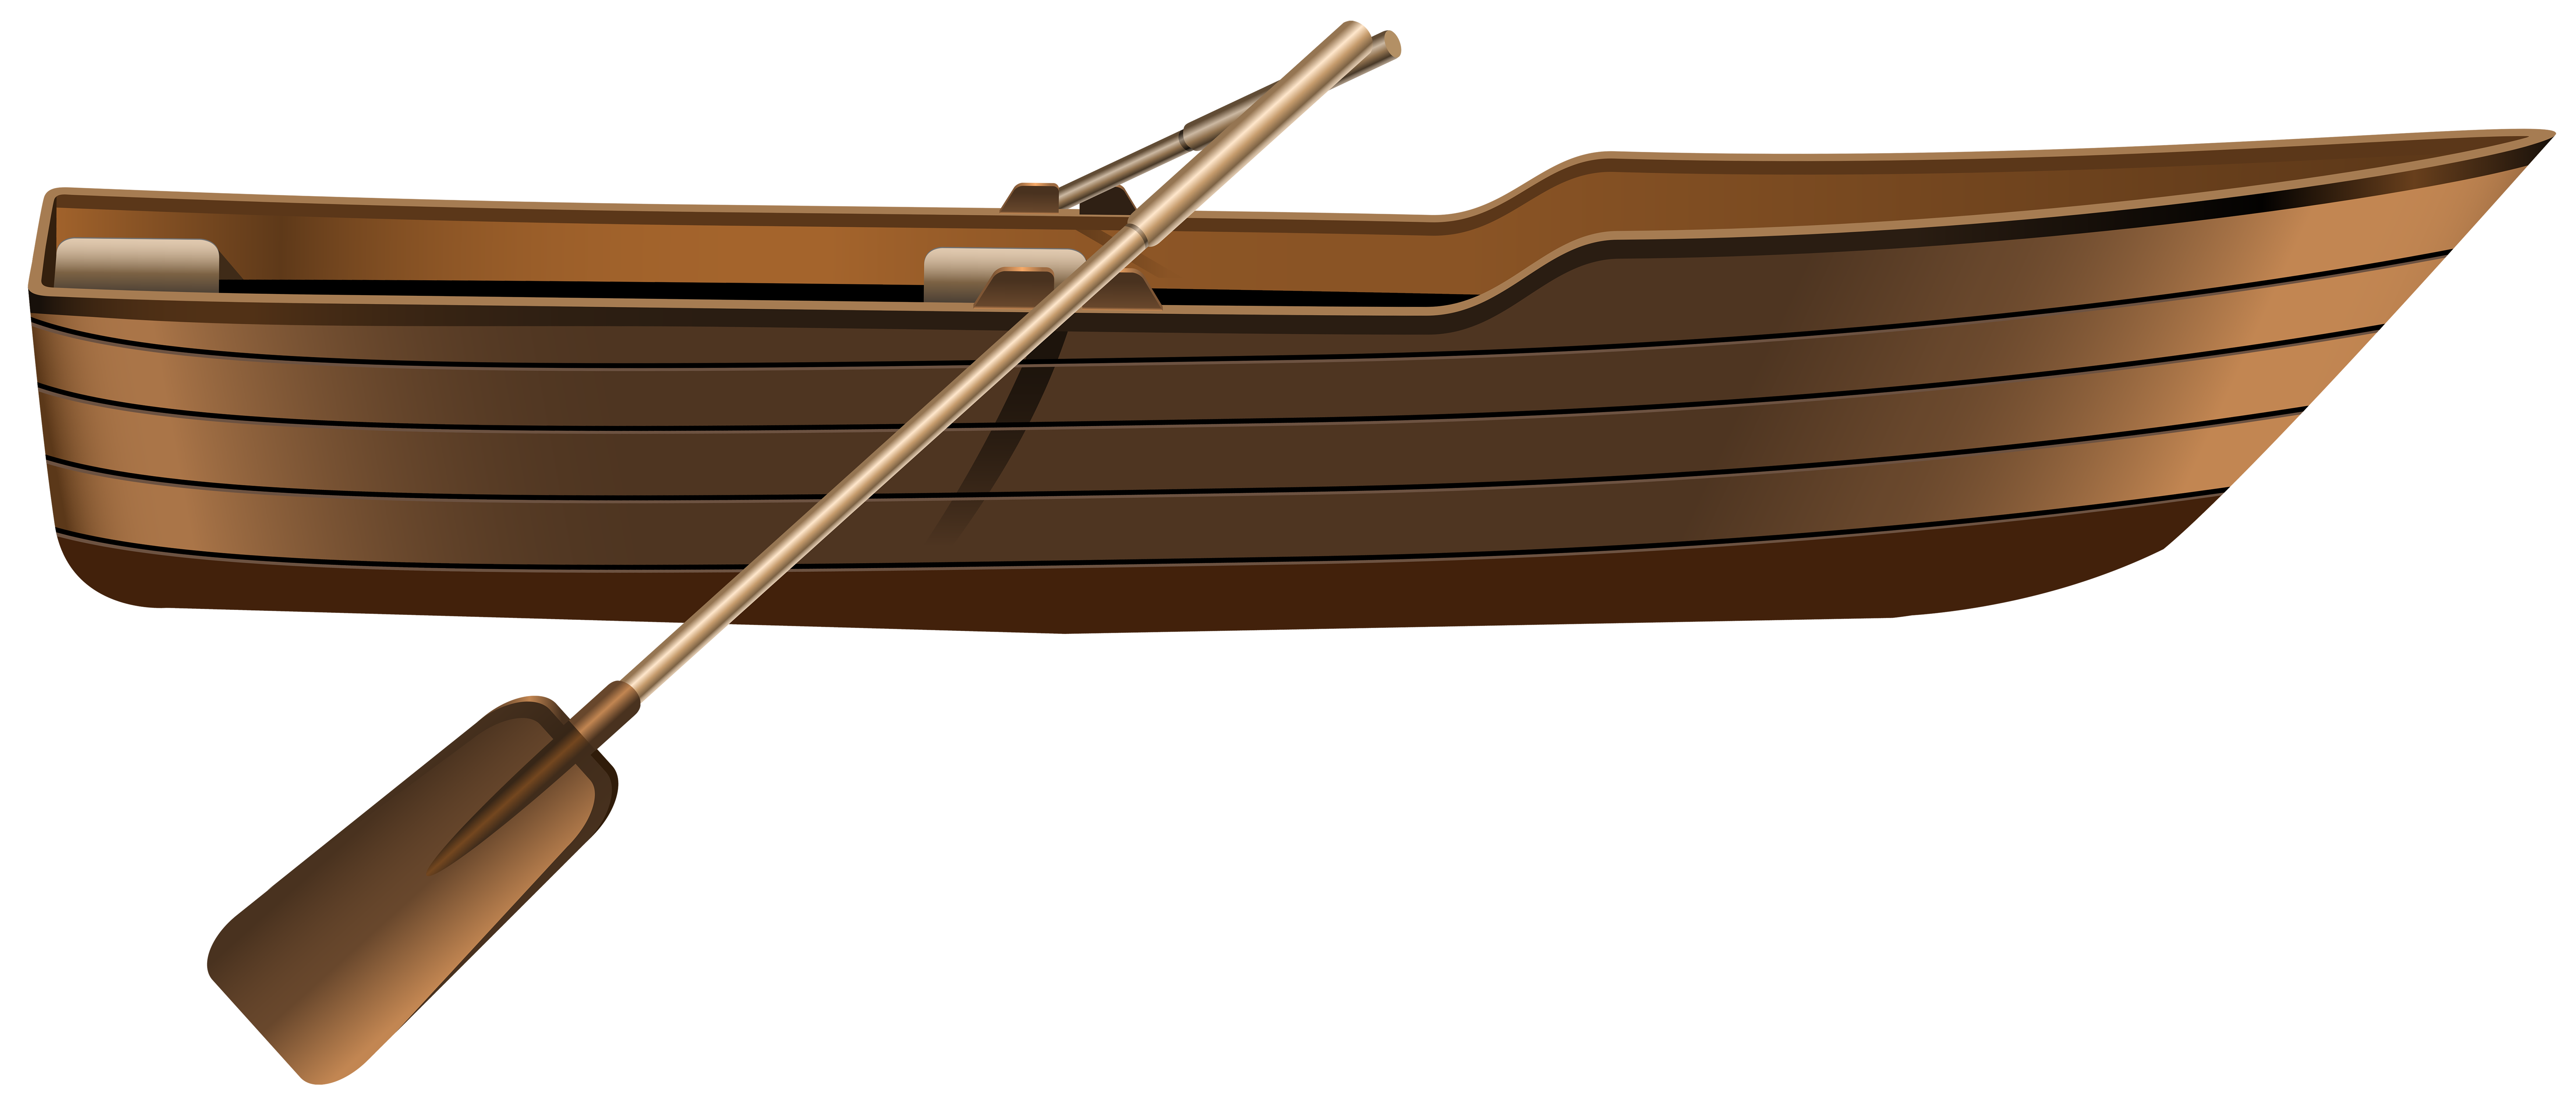 Wooden png clip art. Boat clipart rowing boat